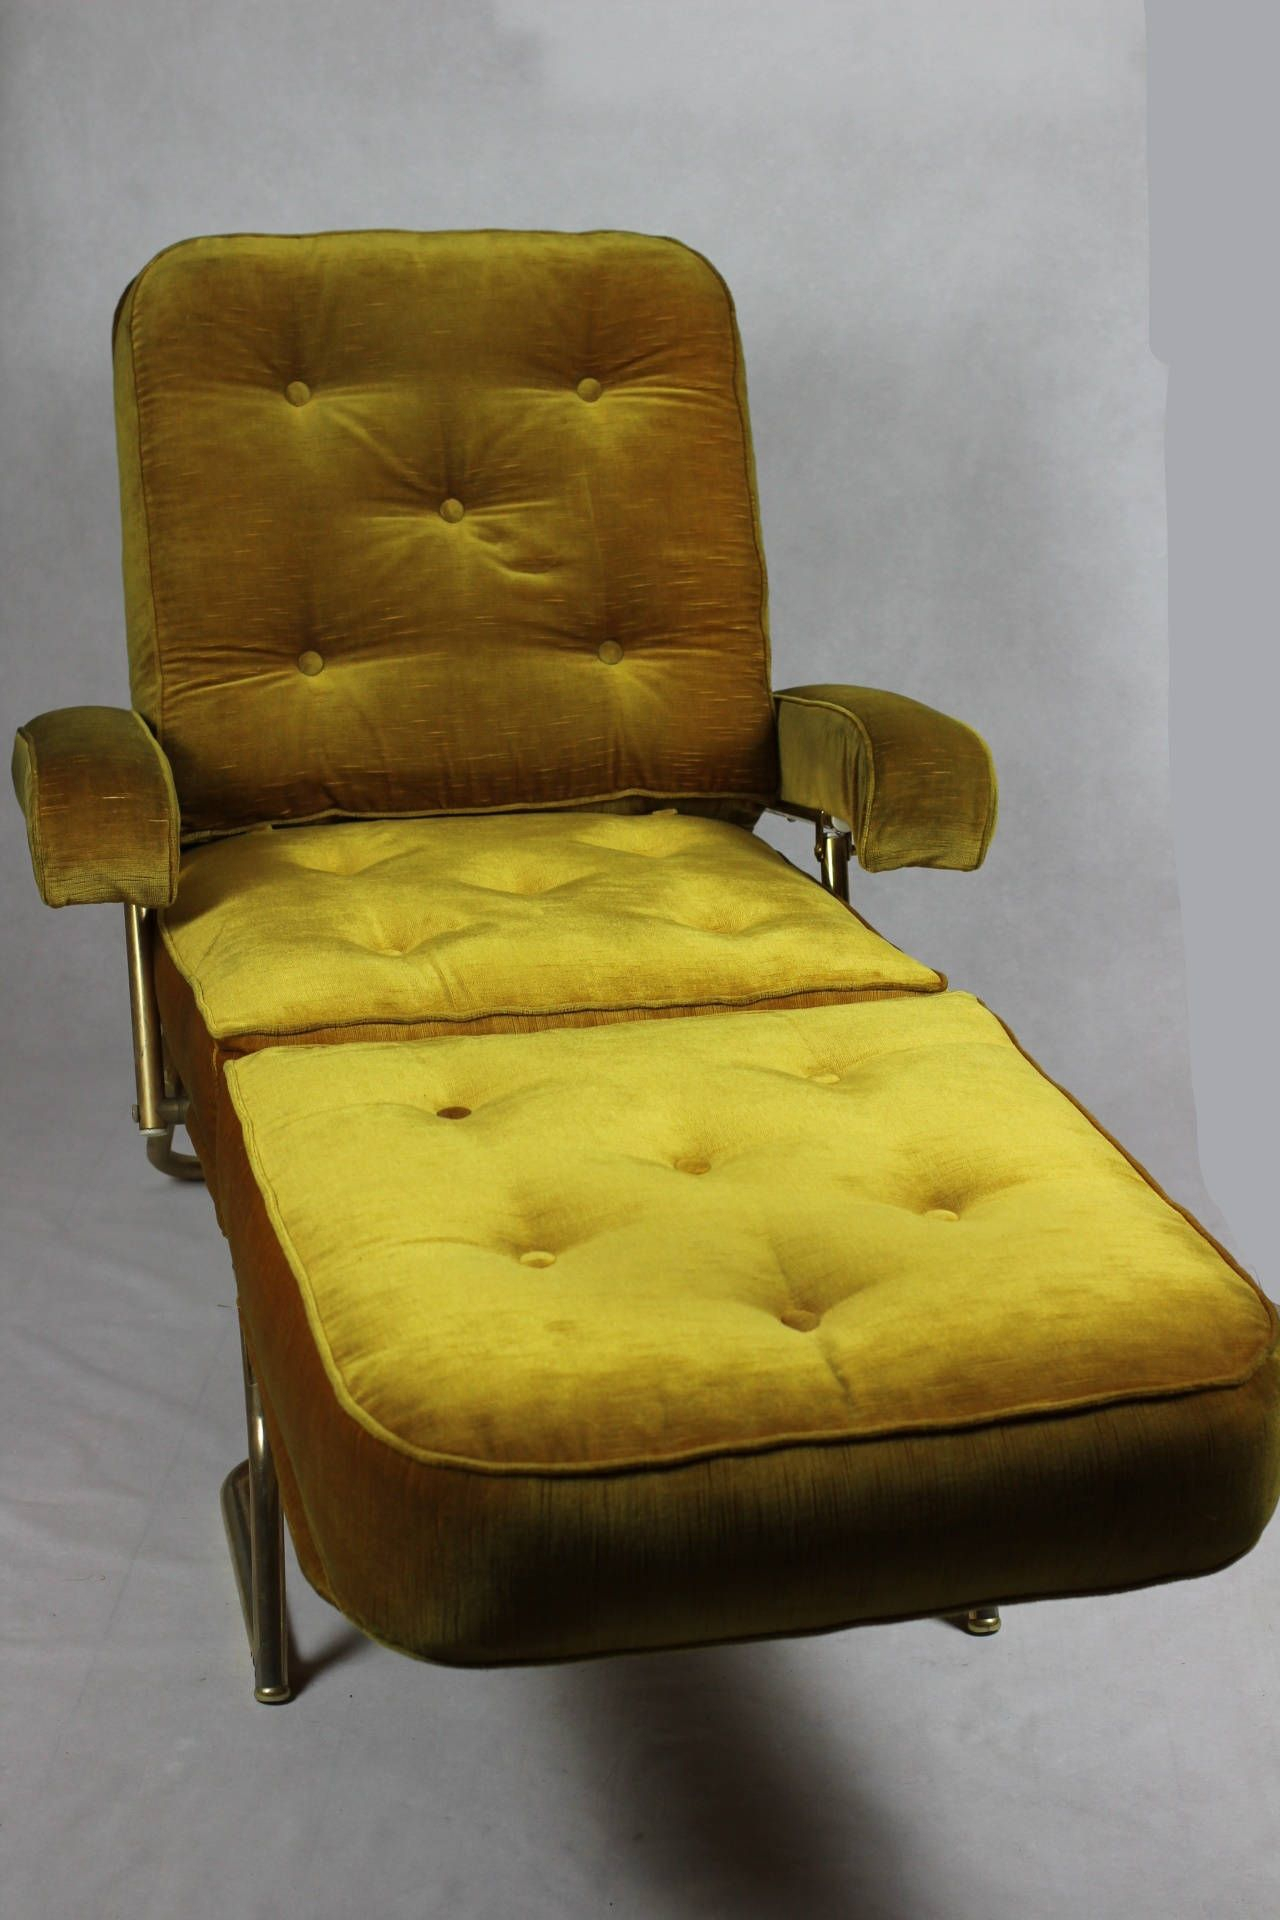 French Designer Chaise Longue // 1970's Avacado Green Within French Seamed Sectional Sofas Oblong Mustard (View 15 of 15)